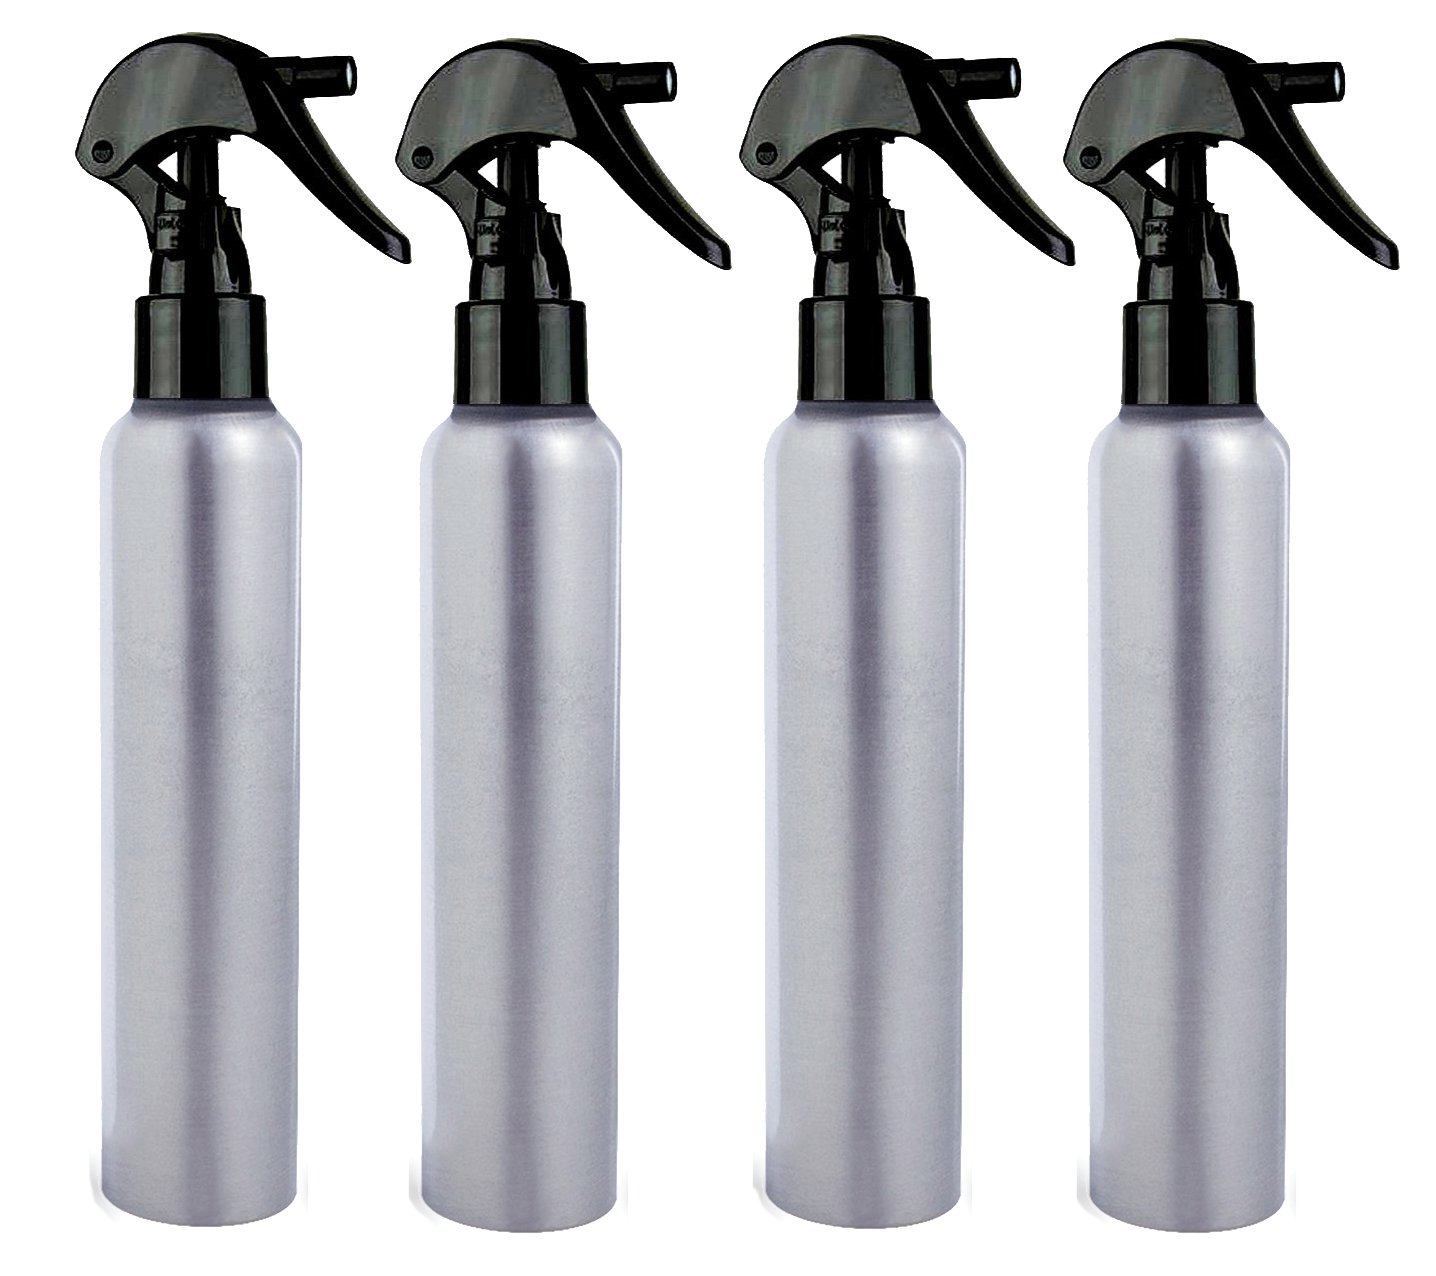 All Aluminum Spray Bottles 4 oz Mister with Fine Mist Black Trigger Sprayer, 4-Pack with Different Choice of Tops & Free Perfume Studio Sample Fragrance (4oz, Black Trigger Sprayer) by Perfume Studio (Image #1)